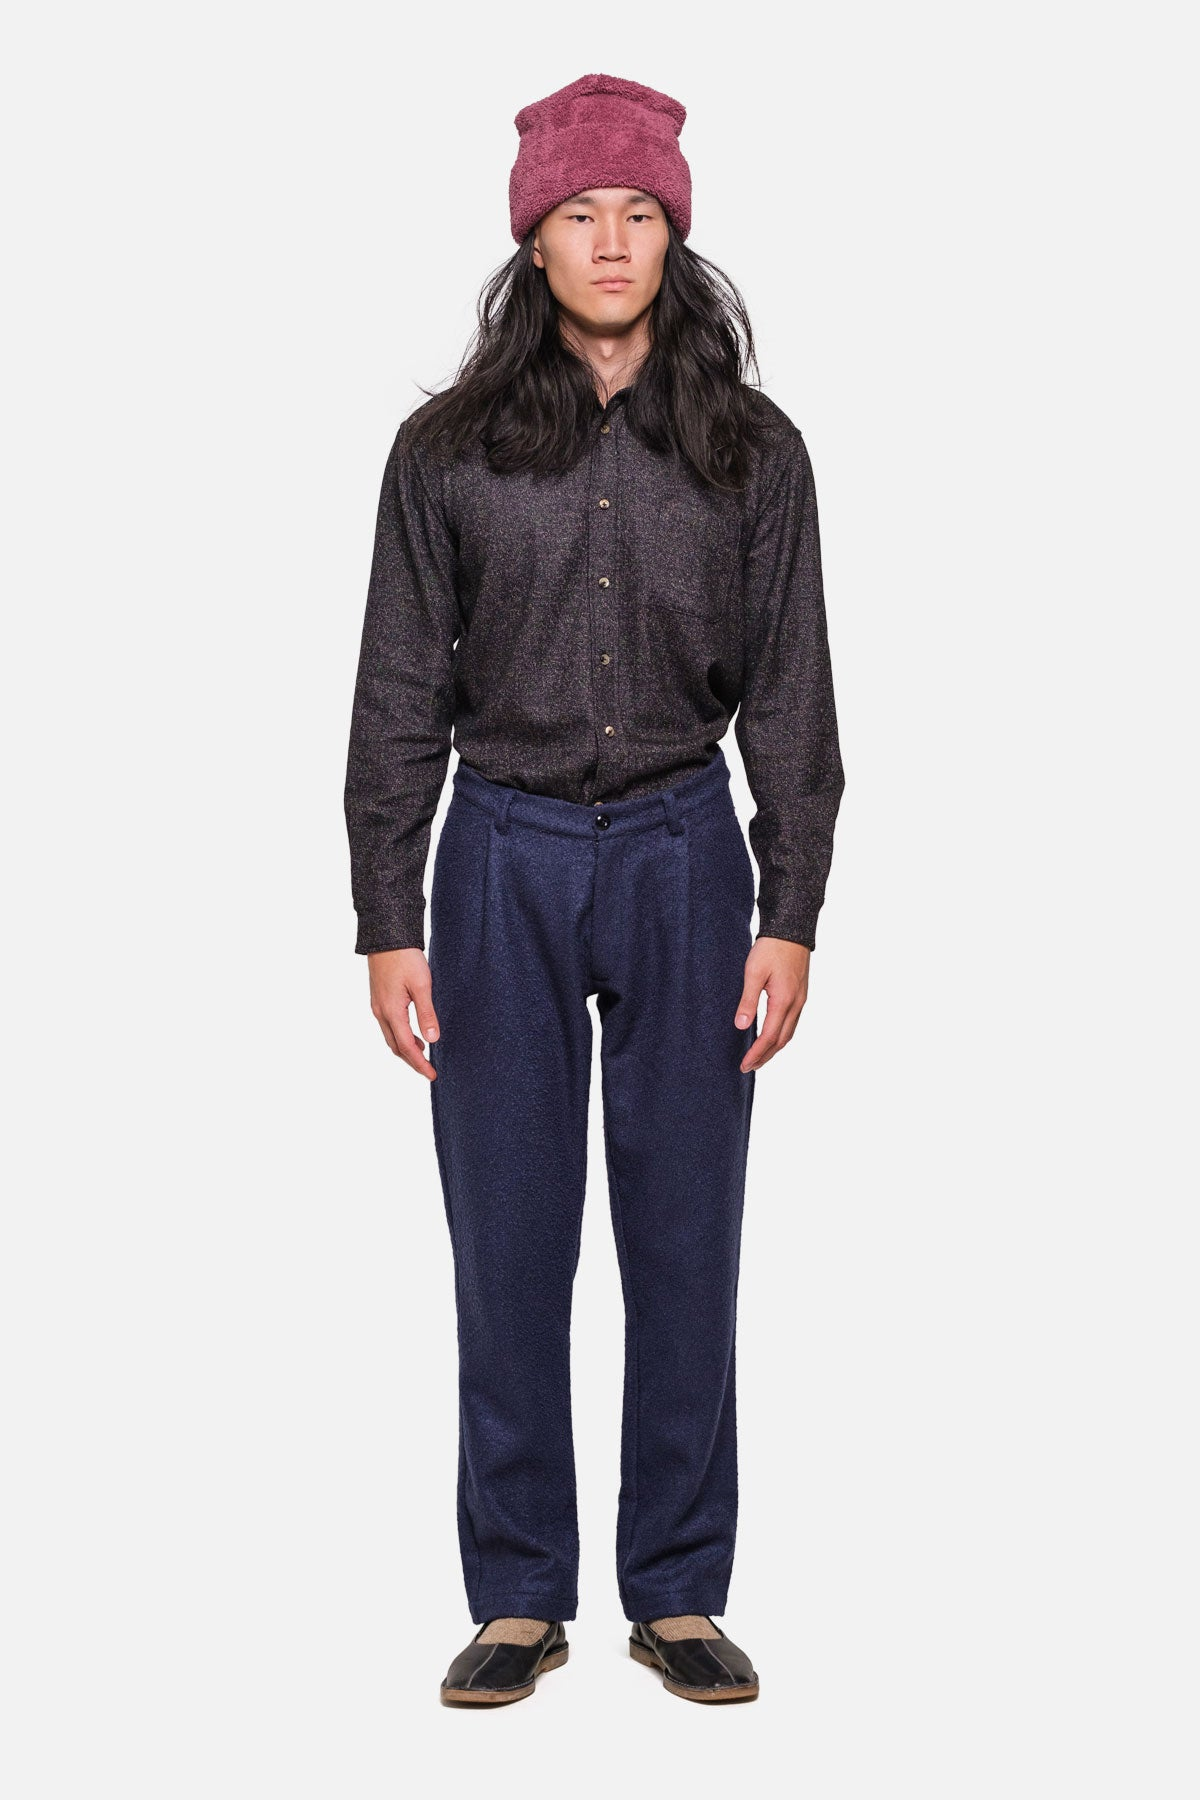 SINGLE PLEAT TROUSERS IN NAVY BOILED WOOL - Fortune Goods